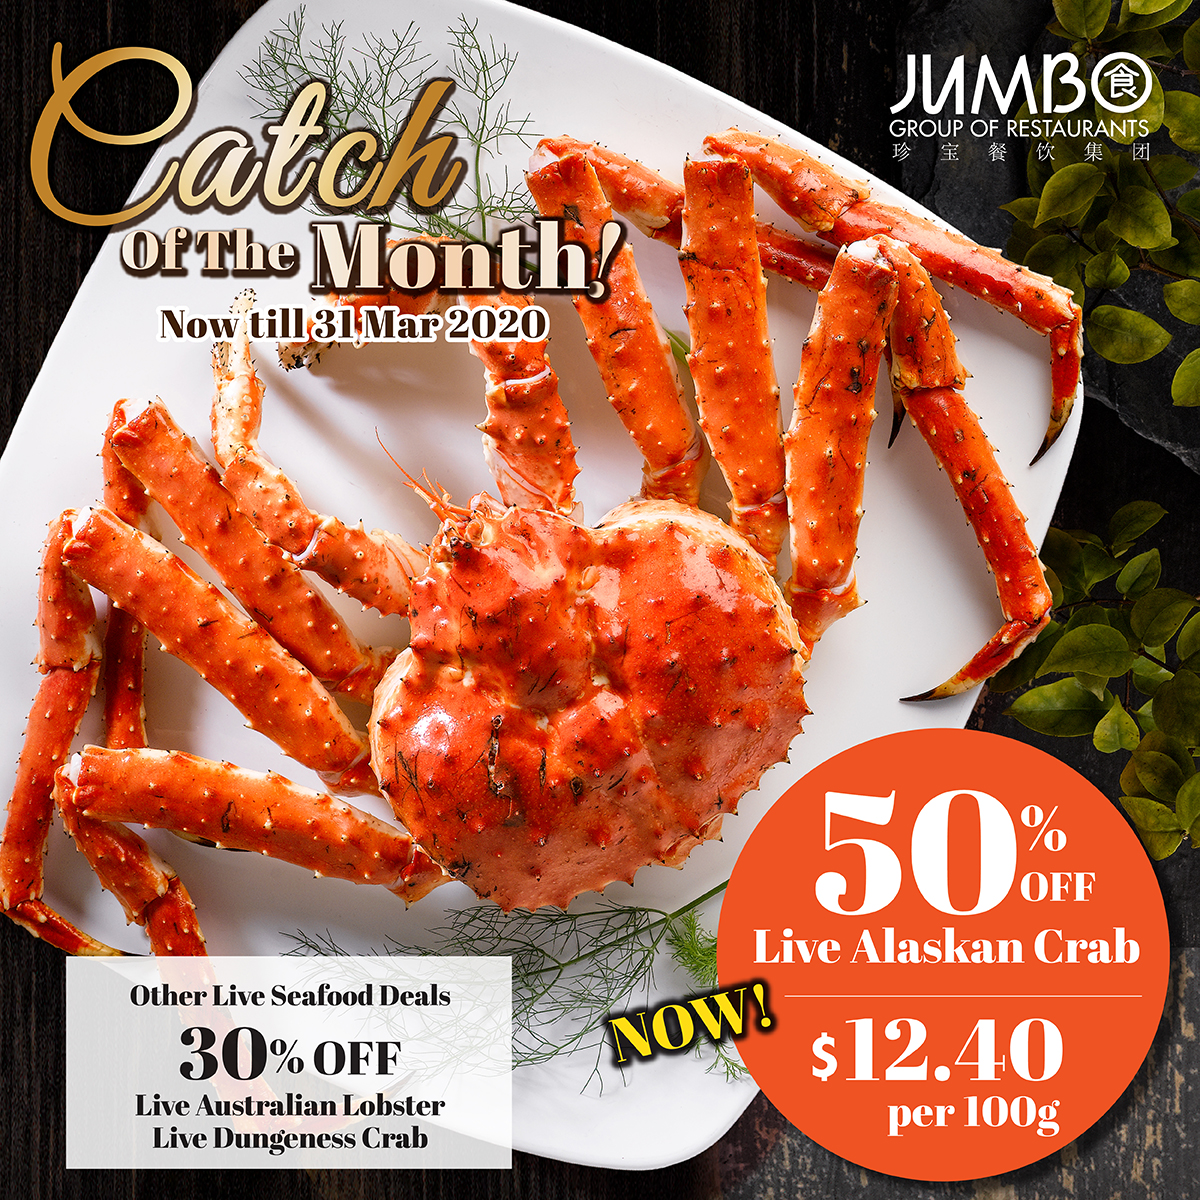 Enjoy 50% OFF on Live Alaskan Crab and More at JUMBO Seafood   Why Not Deals & Promotions